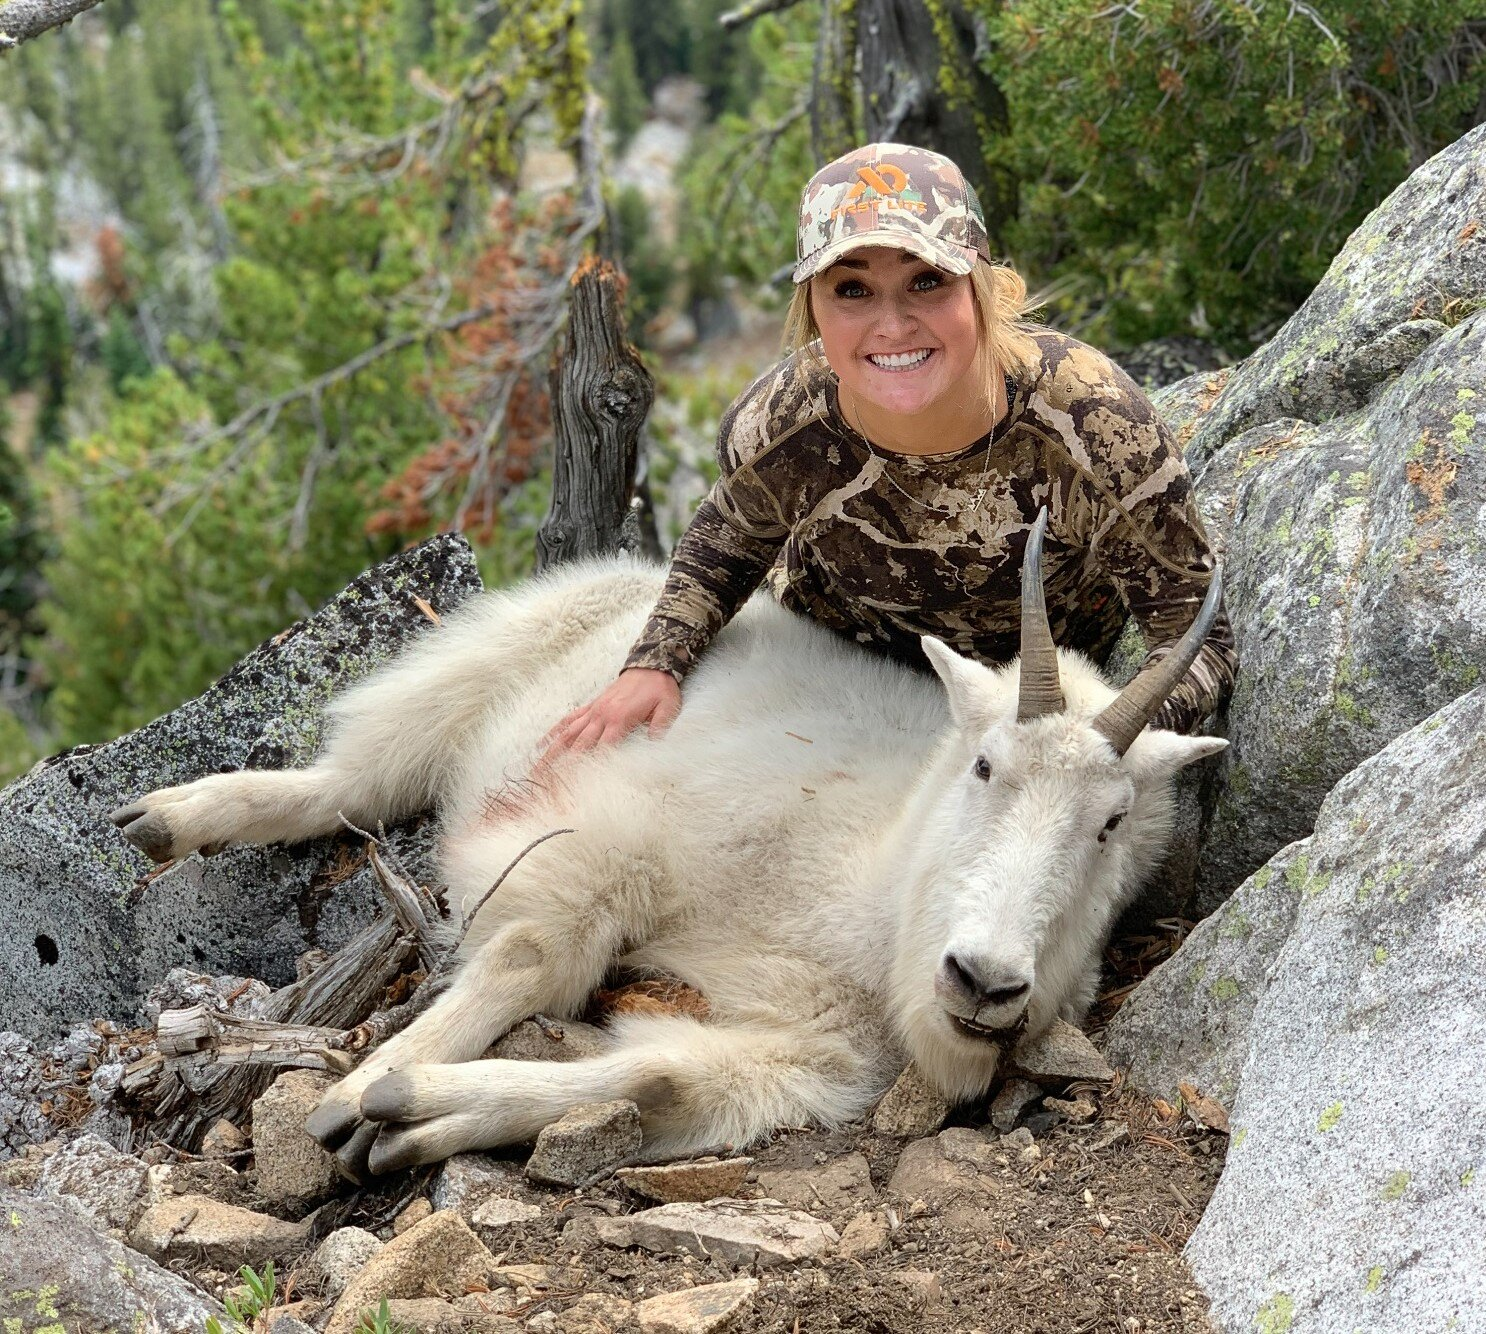 Alyssa Nitschelm on her first hunt after drawing a once-in-a lifetime Rocky Mountain Goat tag in Central Oregon